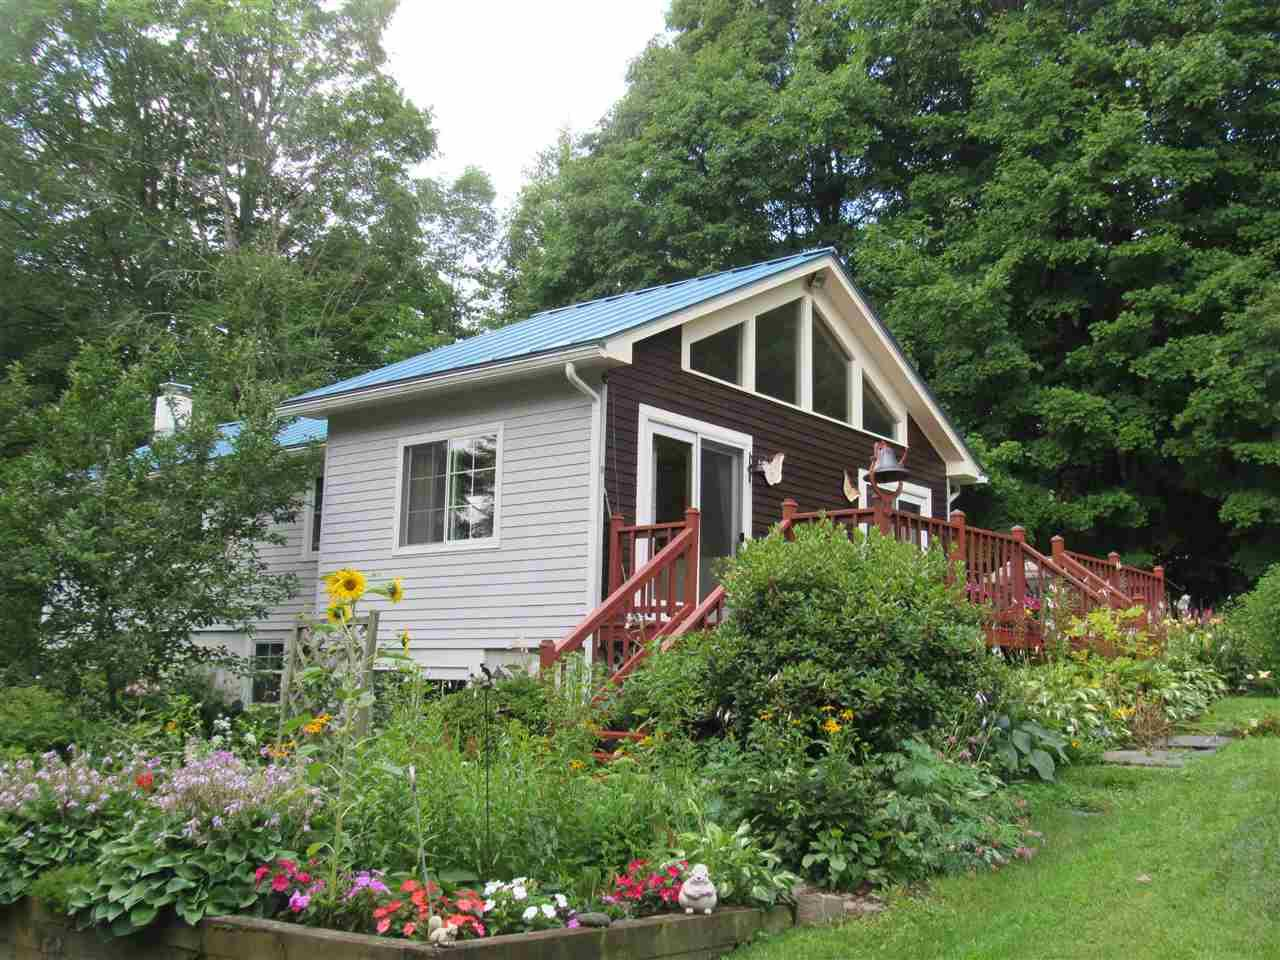 793 S Mountain Rd, Perkinsville, VT